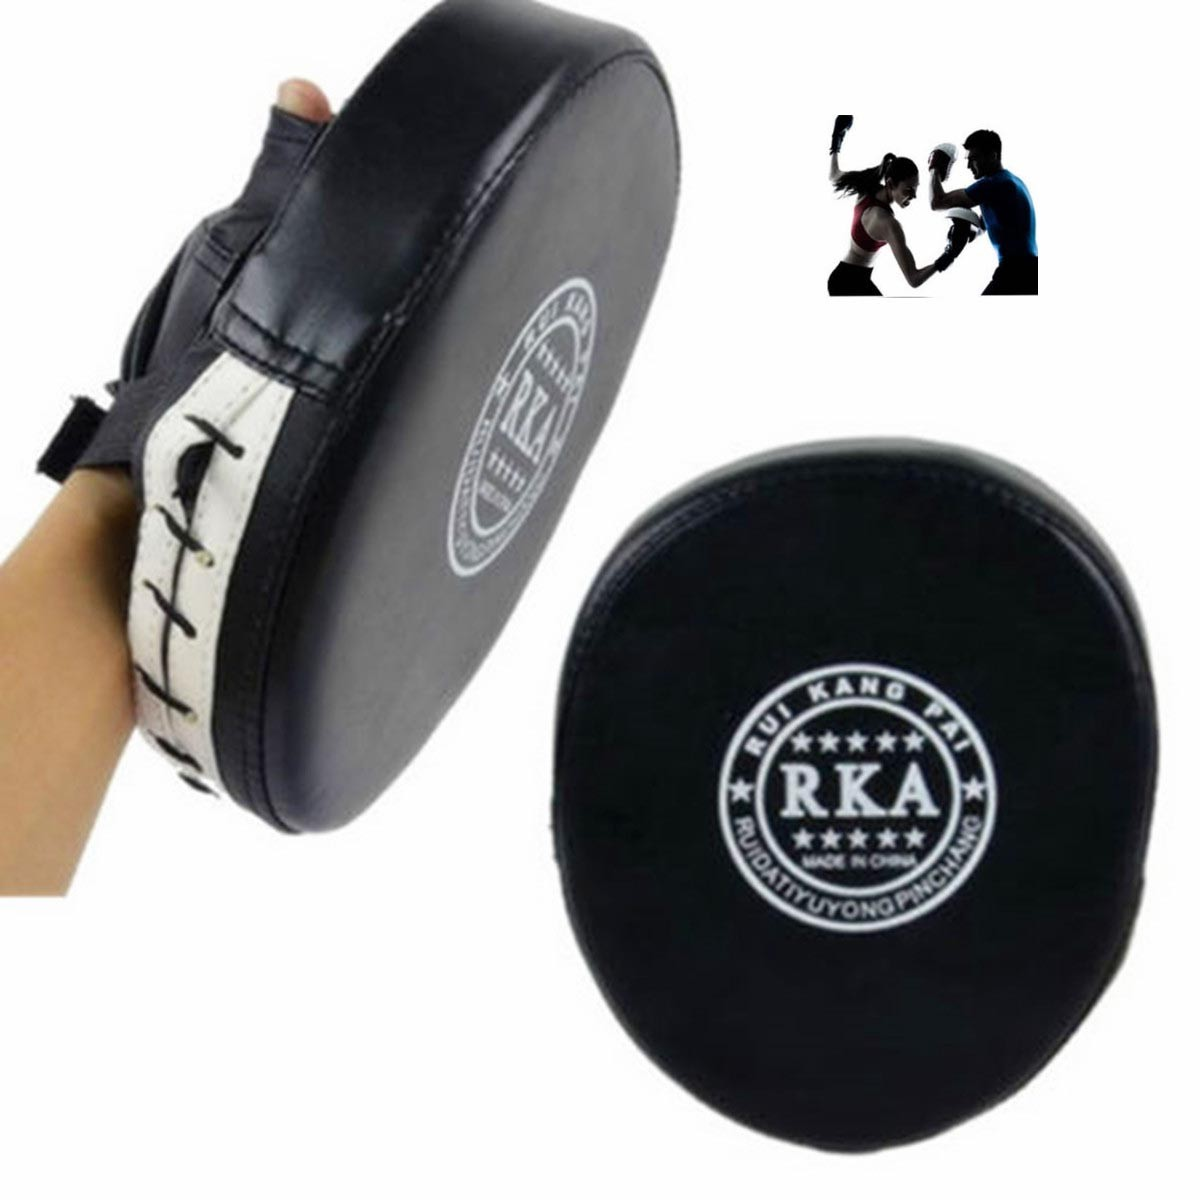 2x Thai Leather Boxing Boxing Pad Mitt Training Target Focus Kick MMA Punch Glove Pad Combat Karate Muay